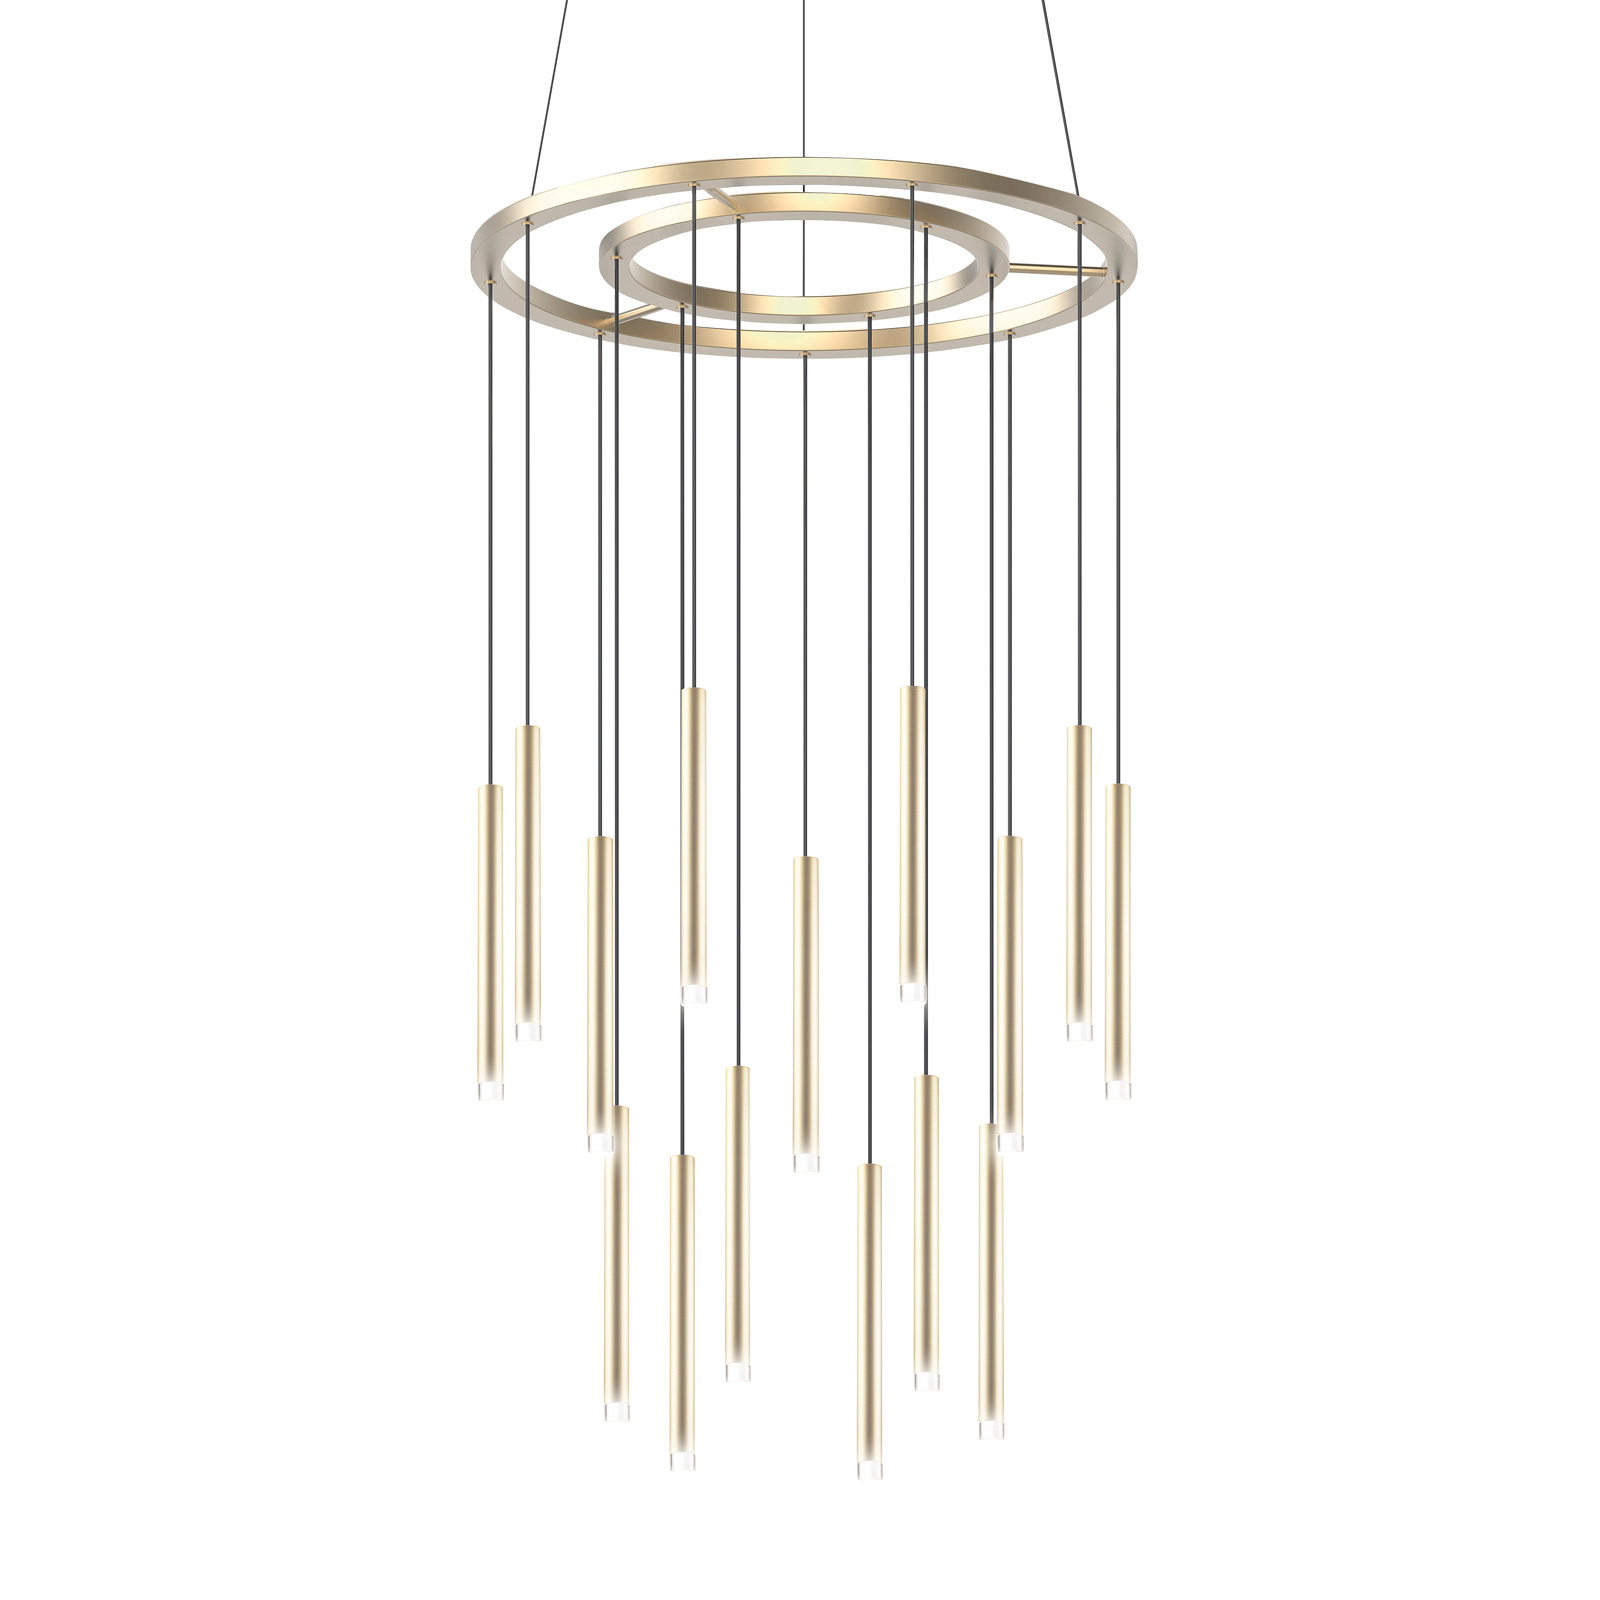 Grok Candle LED hanglamp 18-lamps in goud satijn